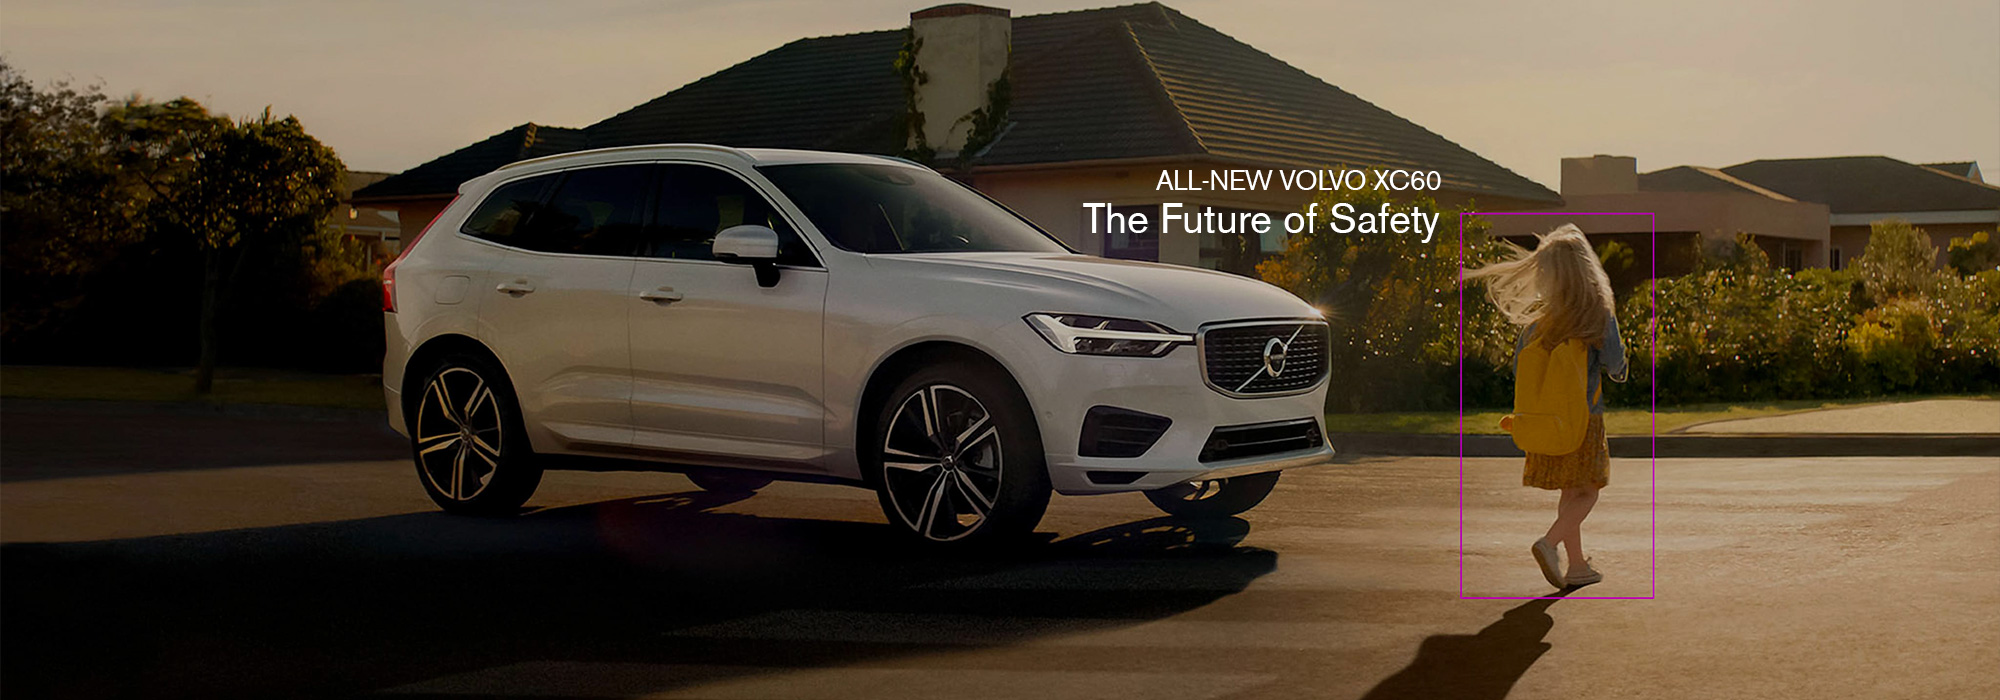 Welcome to scuderia veloce volvo cars whatever your lifestyle